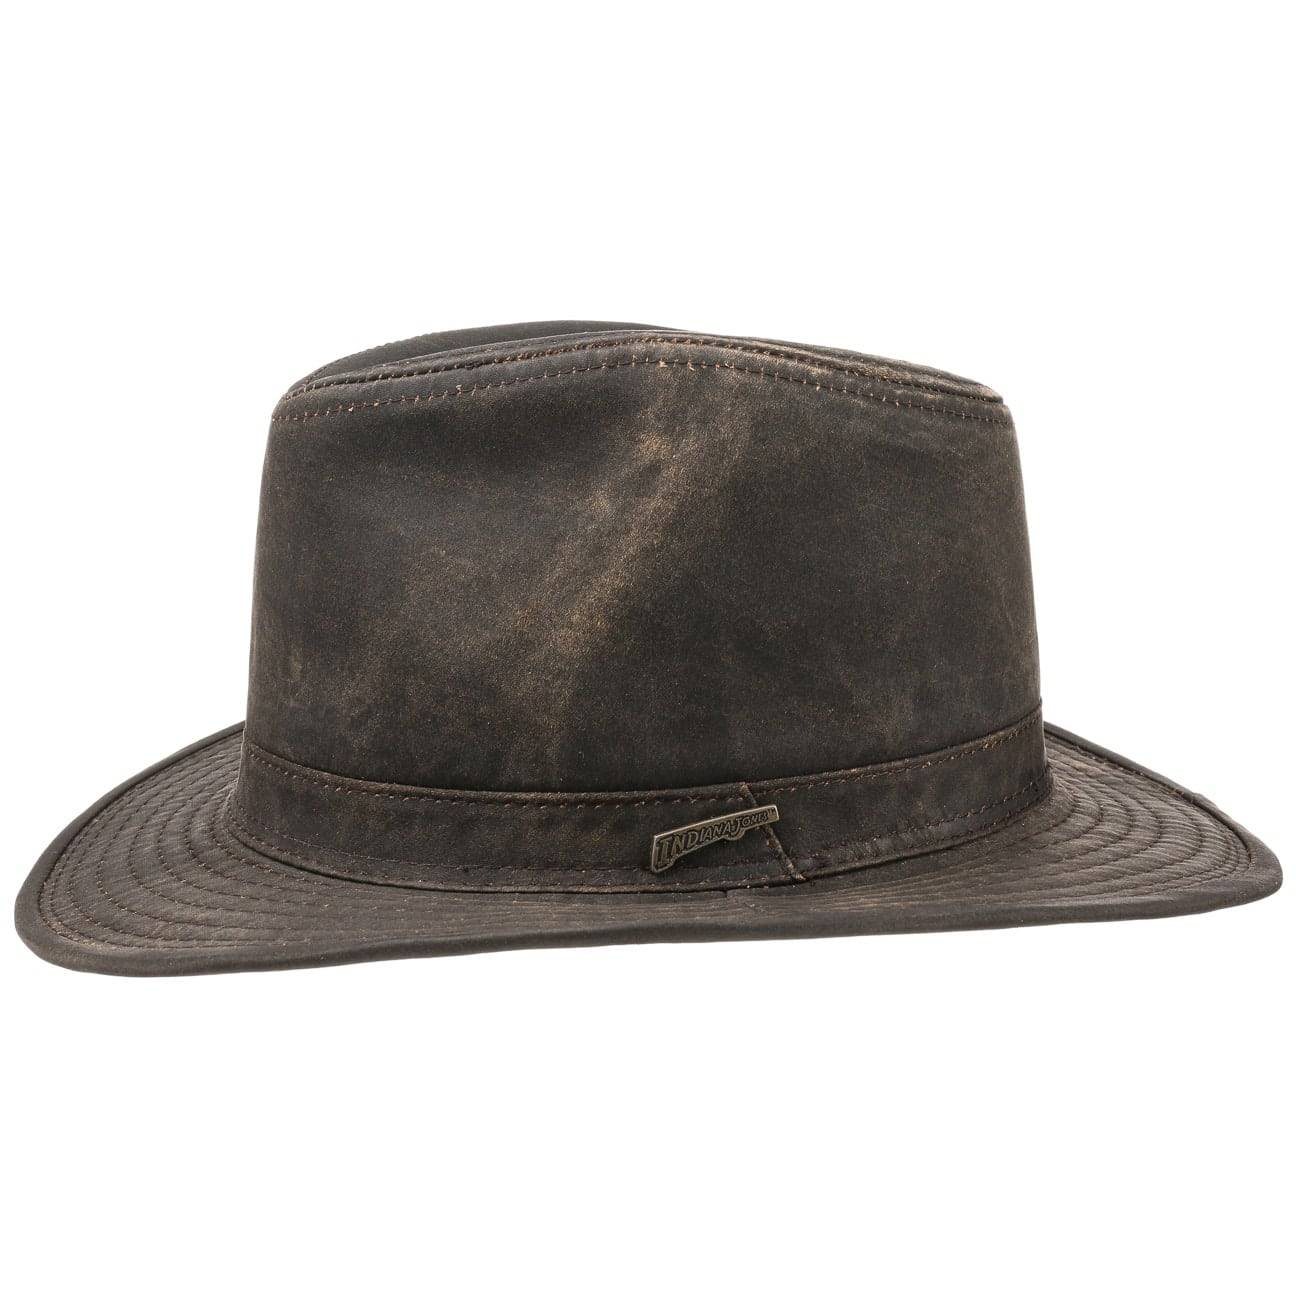 4a91564bf389b Sombrero Outdoor Indiana Jones - Sombreros - sombreroshop.es